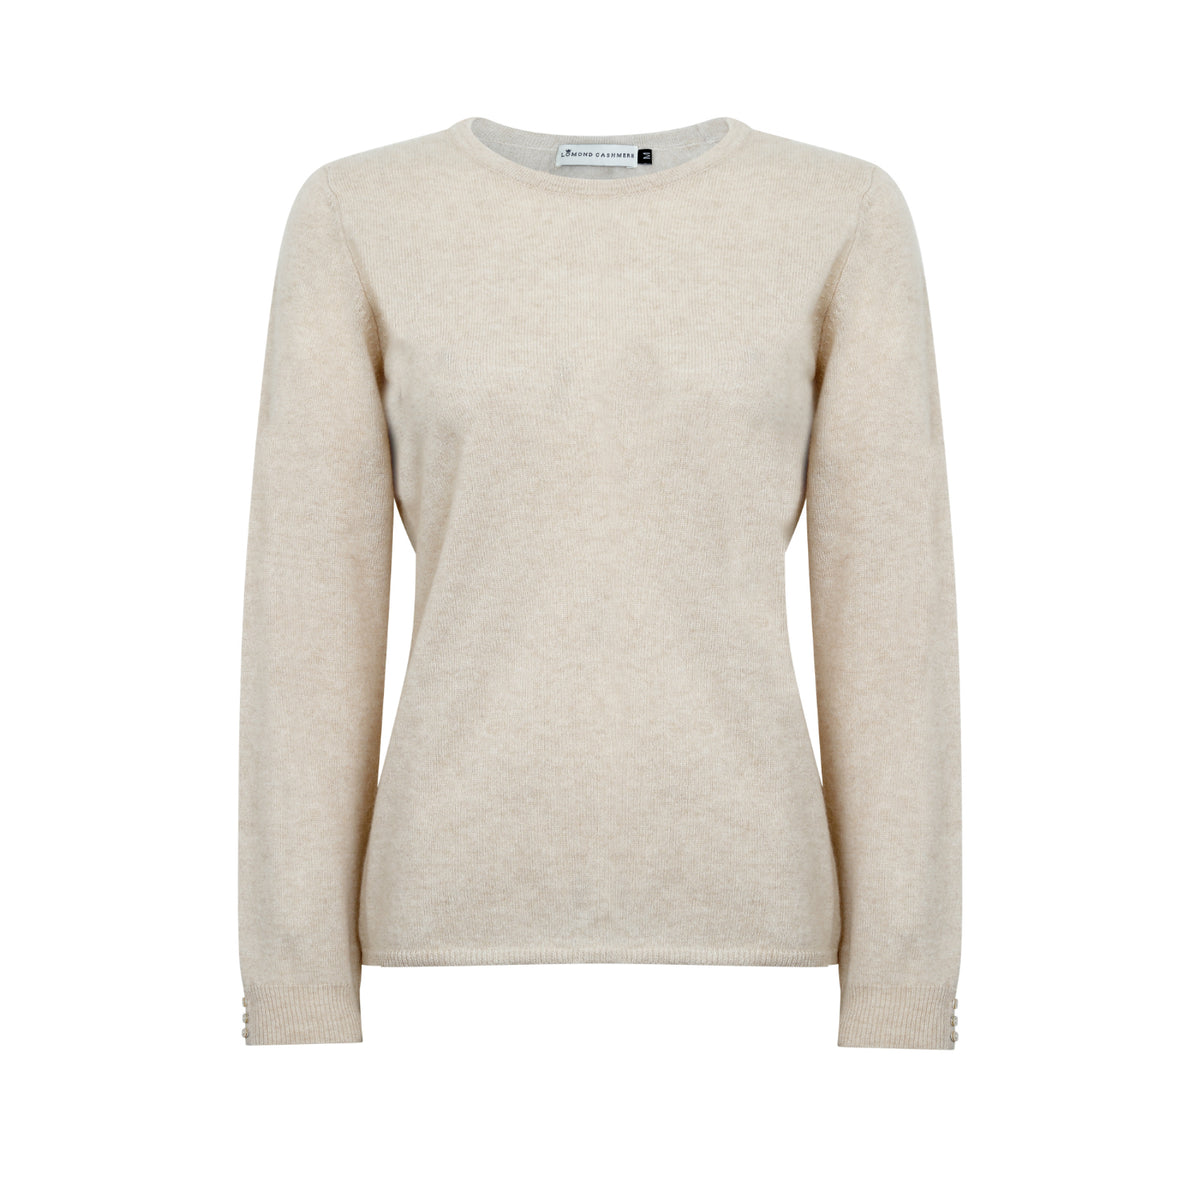 Lomond Cashmere | Ladies 2-Ply Cashmere Round Neck | Beige Organic Brown | Shop now at The Cashmere Choice | London